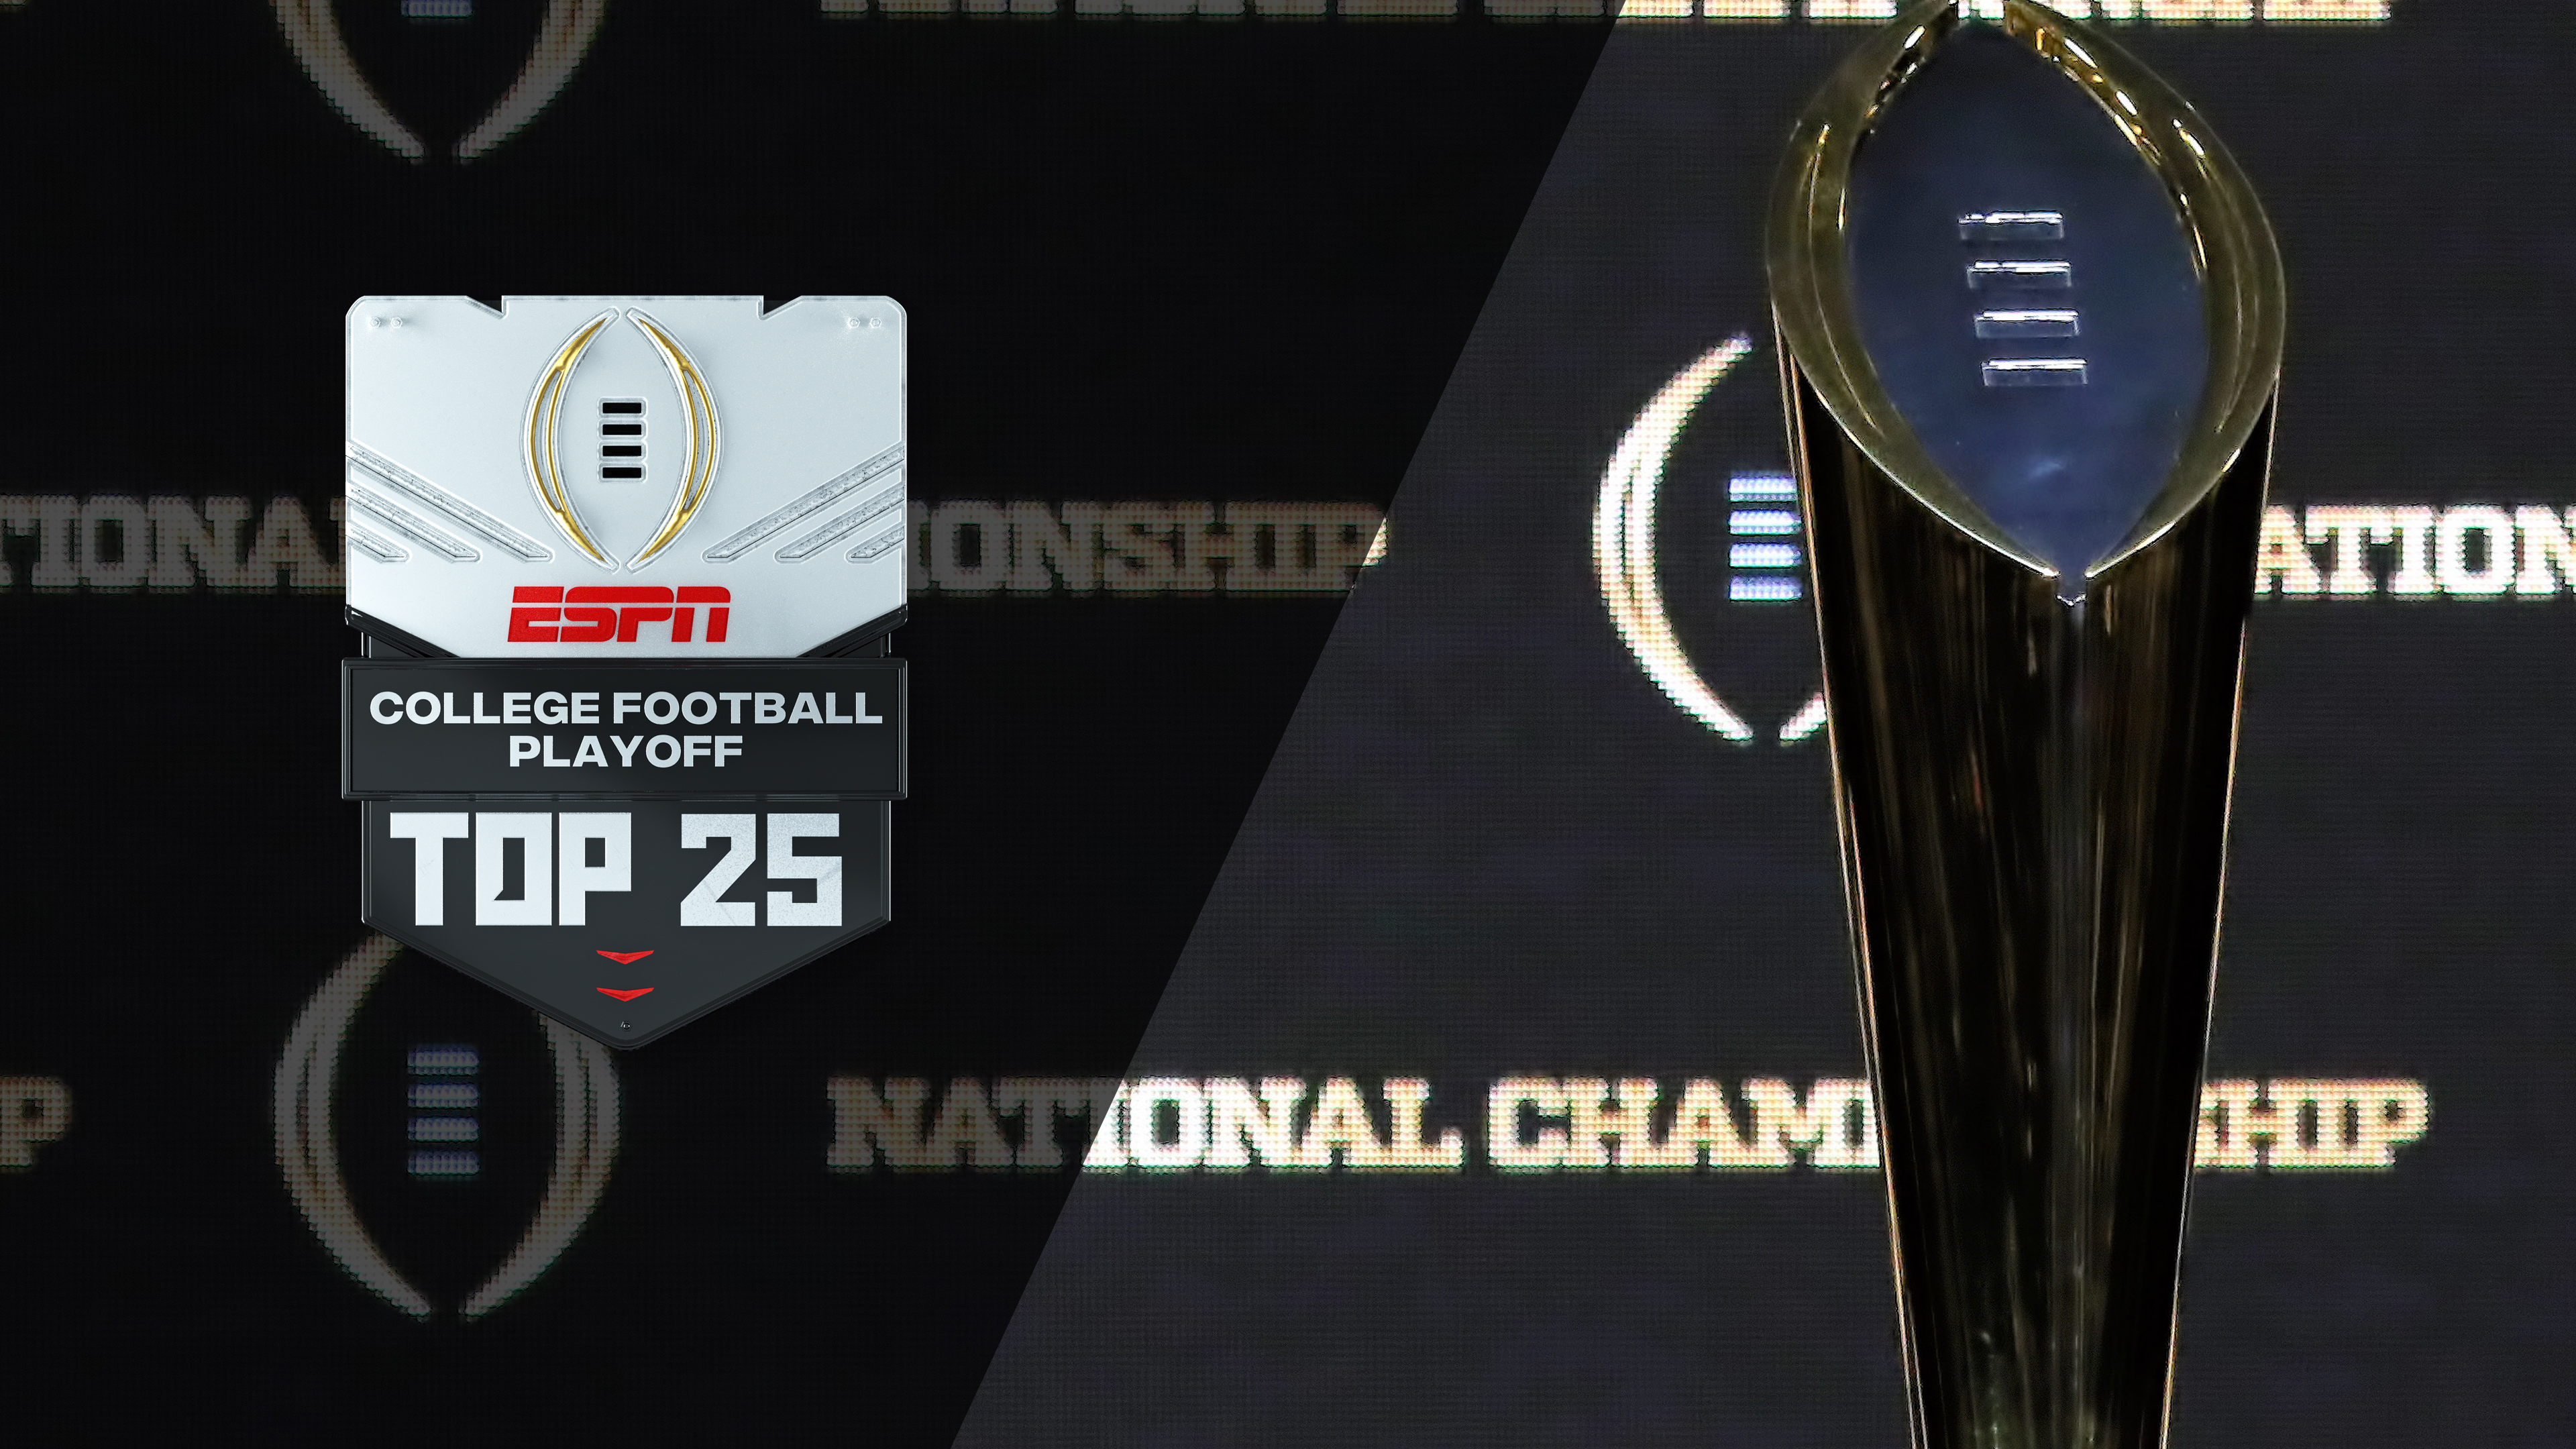 Tue, 10/16 - College Football Playoff: Top 25 Presented by Northwestern Mutual